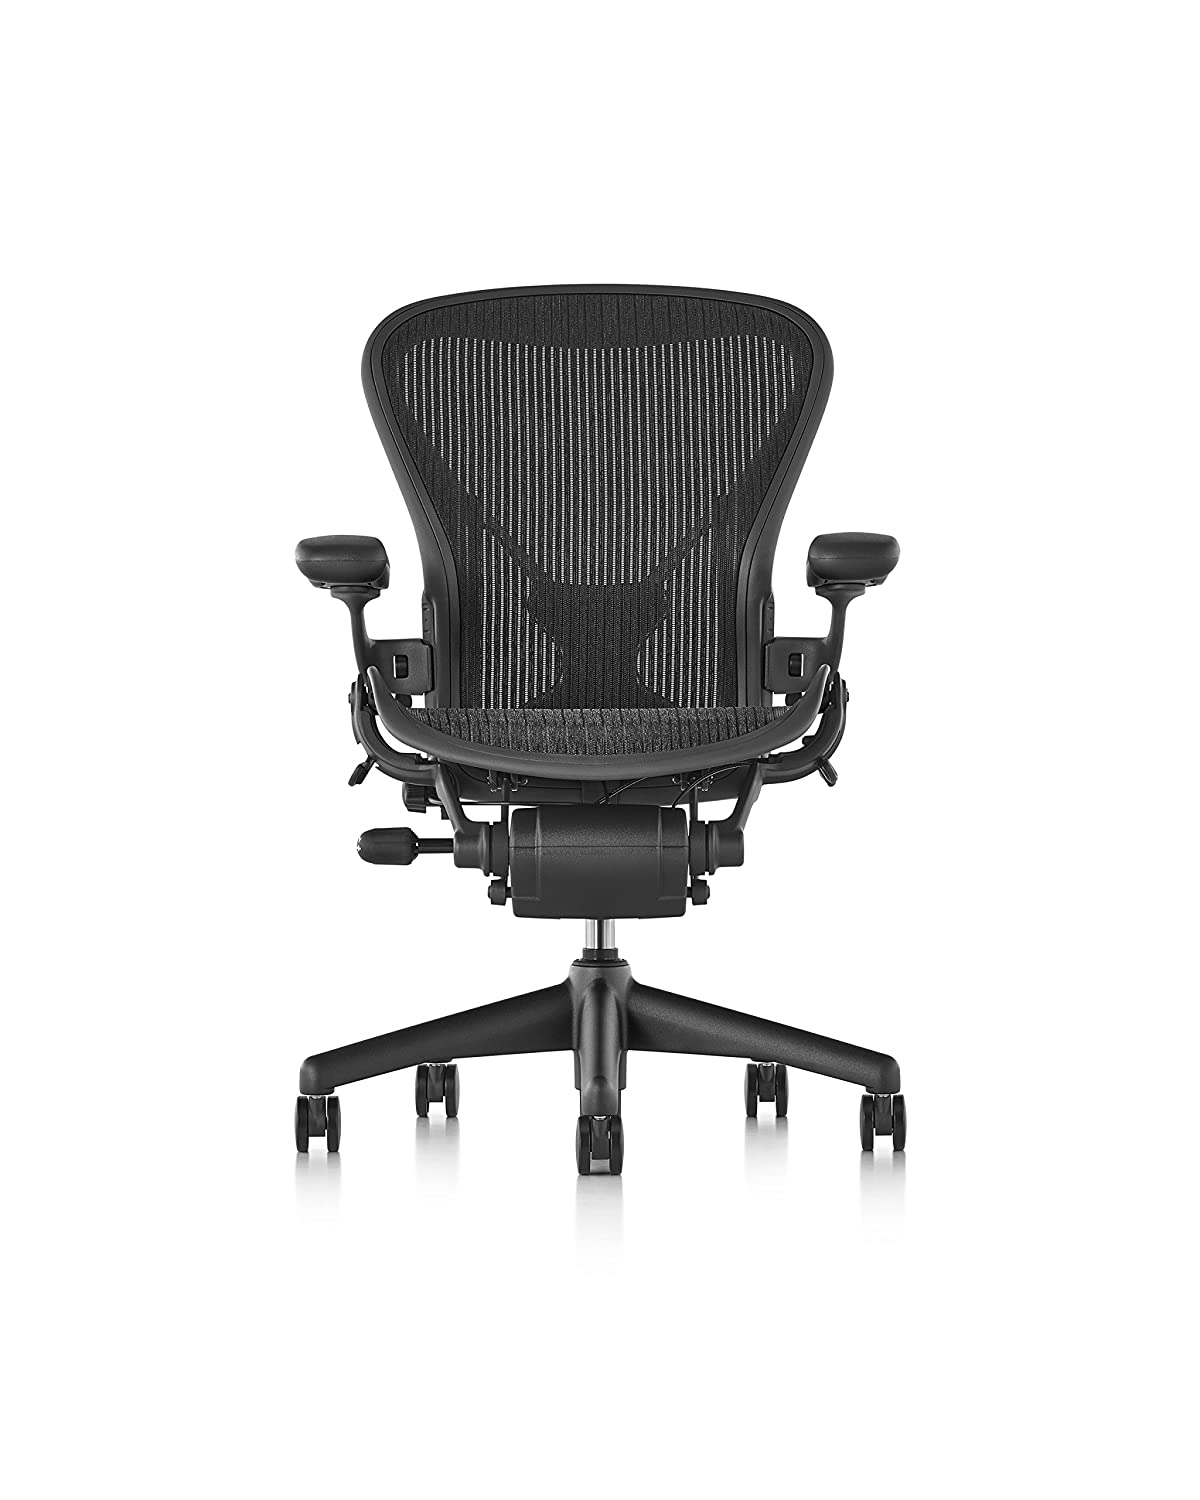 Herman Miller Classic Aeron Chair - Fully Adjustable - C size - Adjustable PostureFit - Carpet Casters